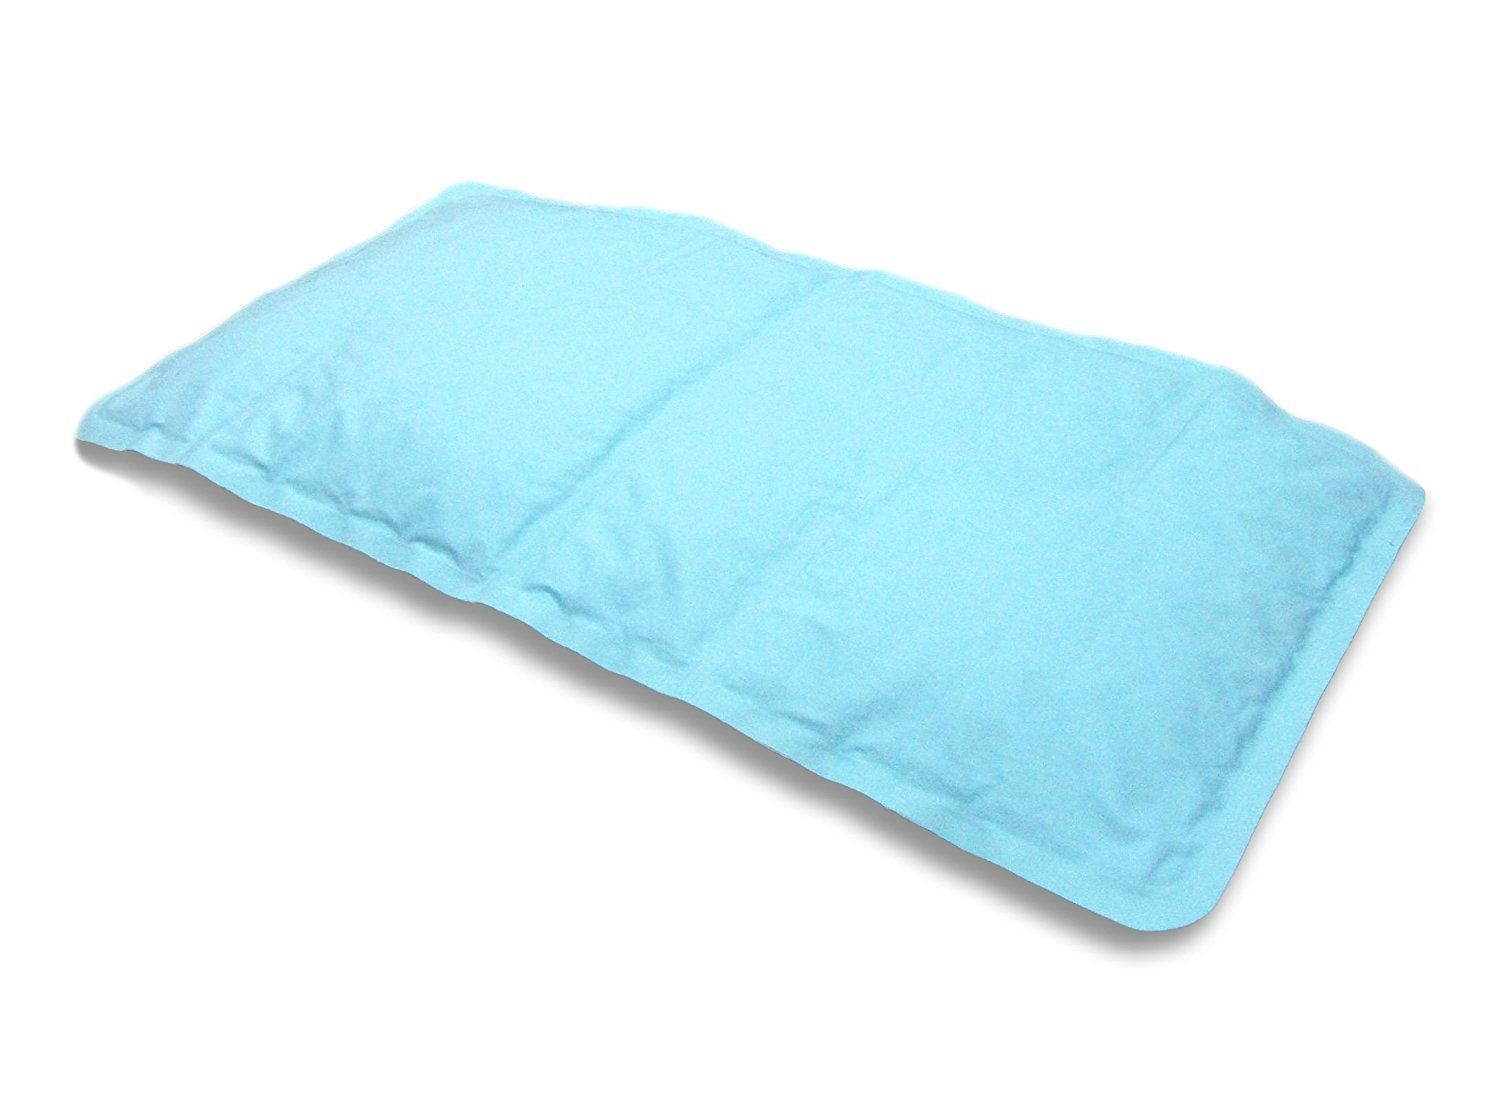 Gel'O Cool Pillow Mat - Amazon